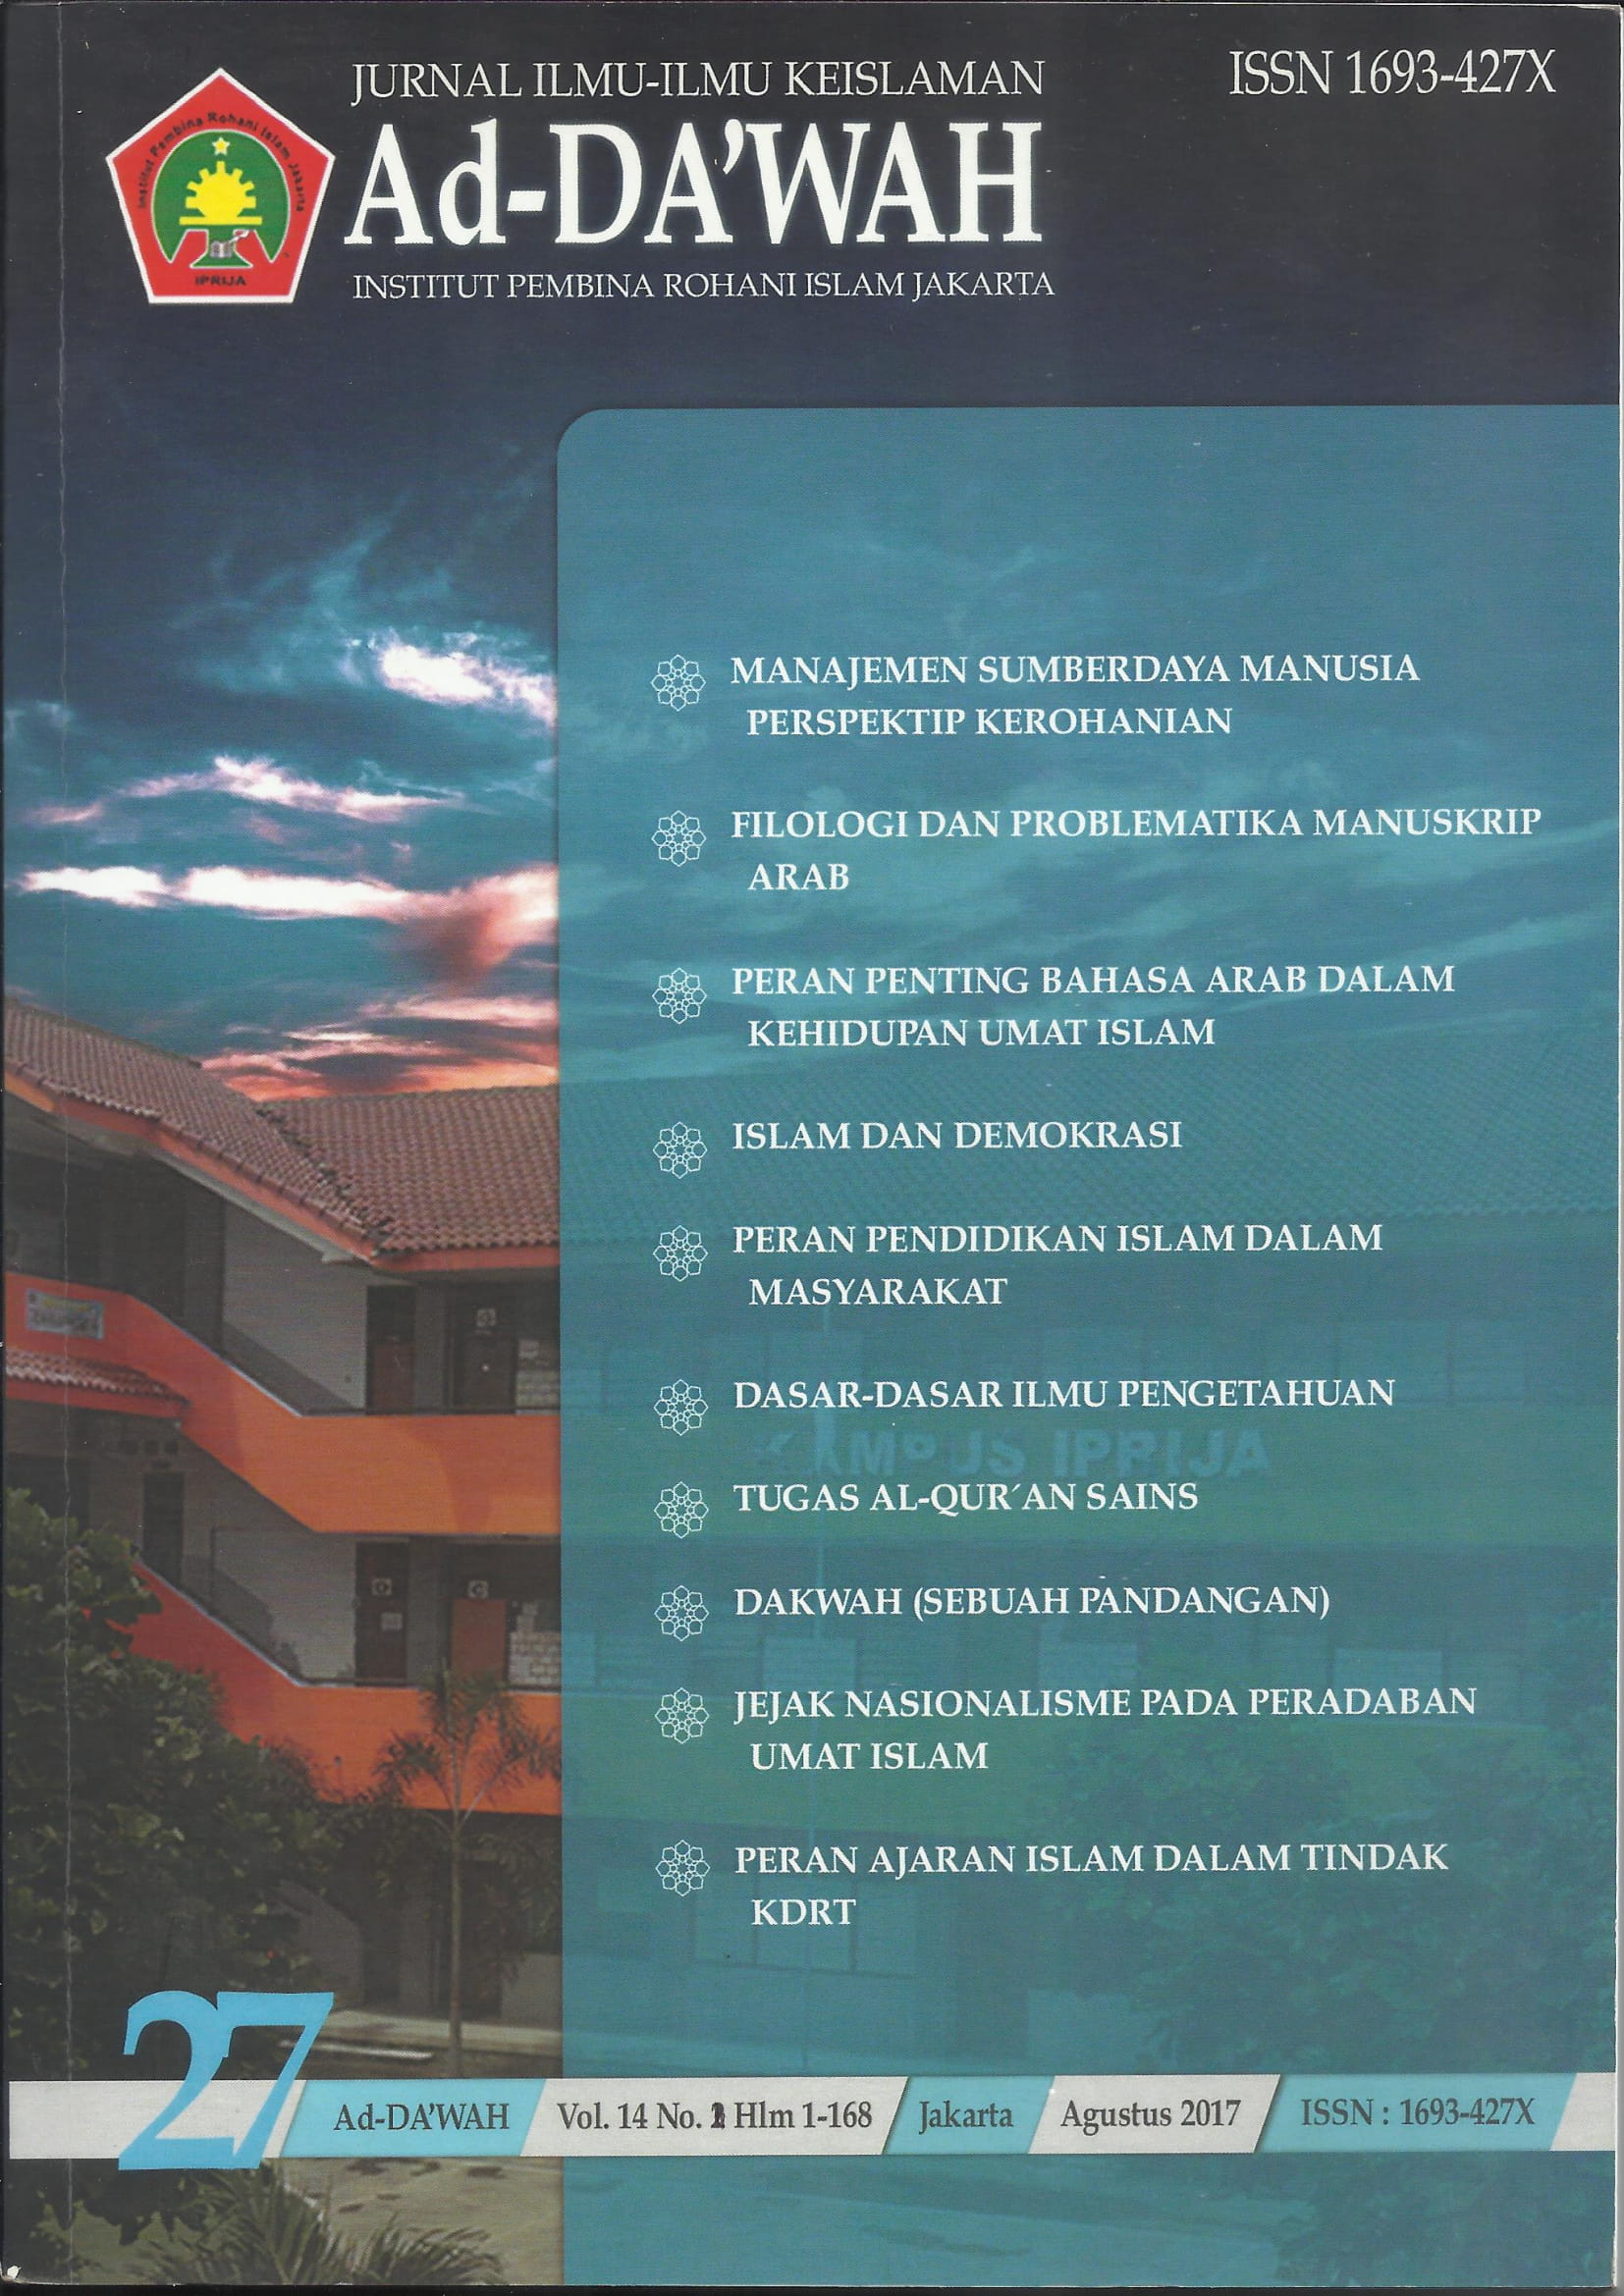 Jurnal Ad-Da'wah 27 Vol. 14 No. 1 Tahun 2017